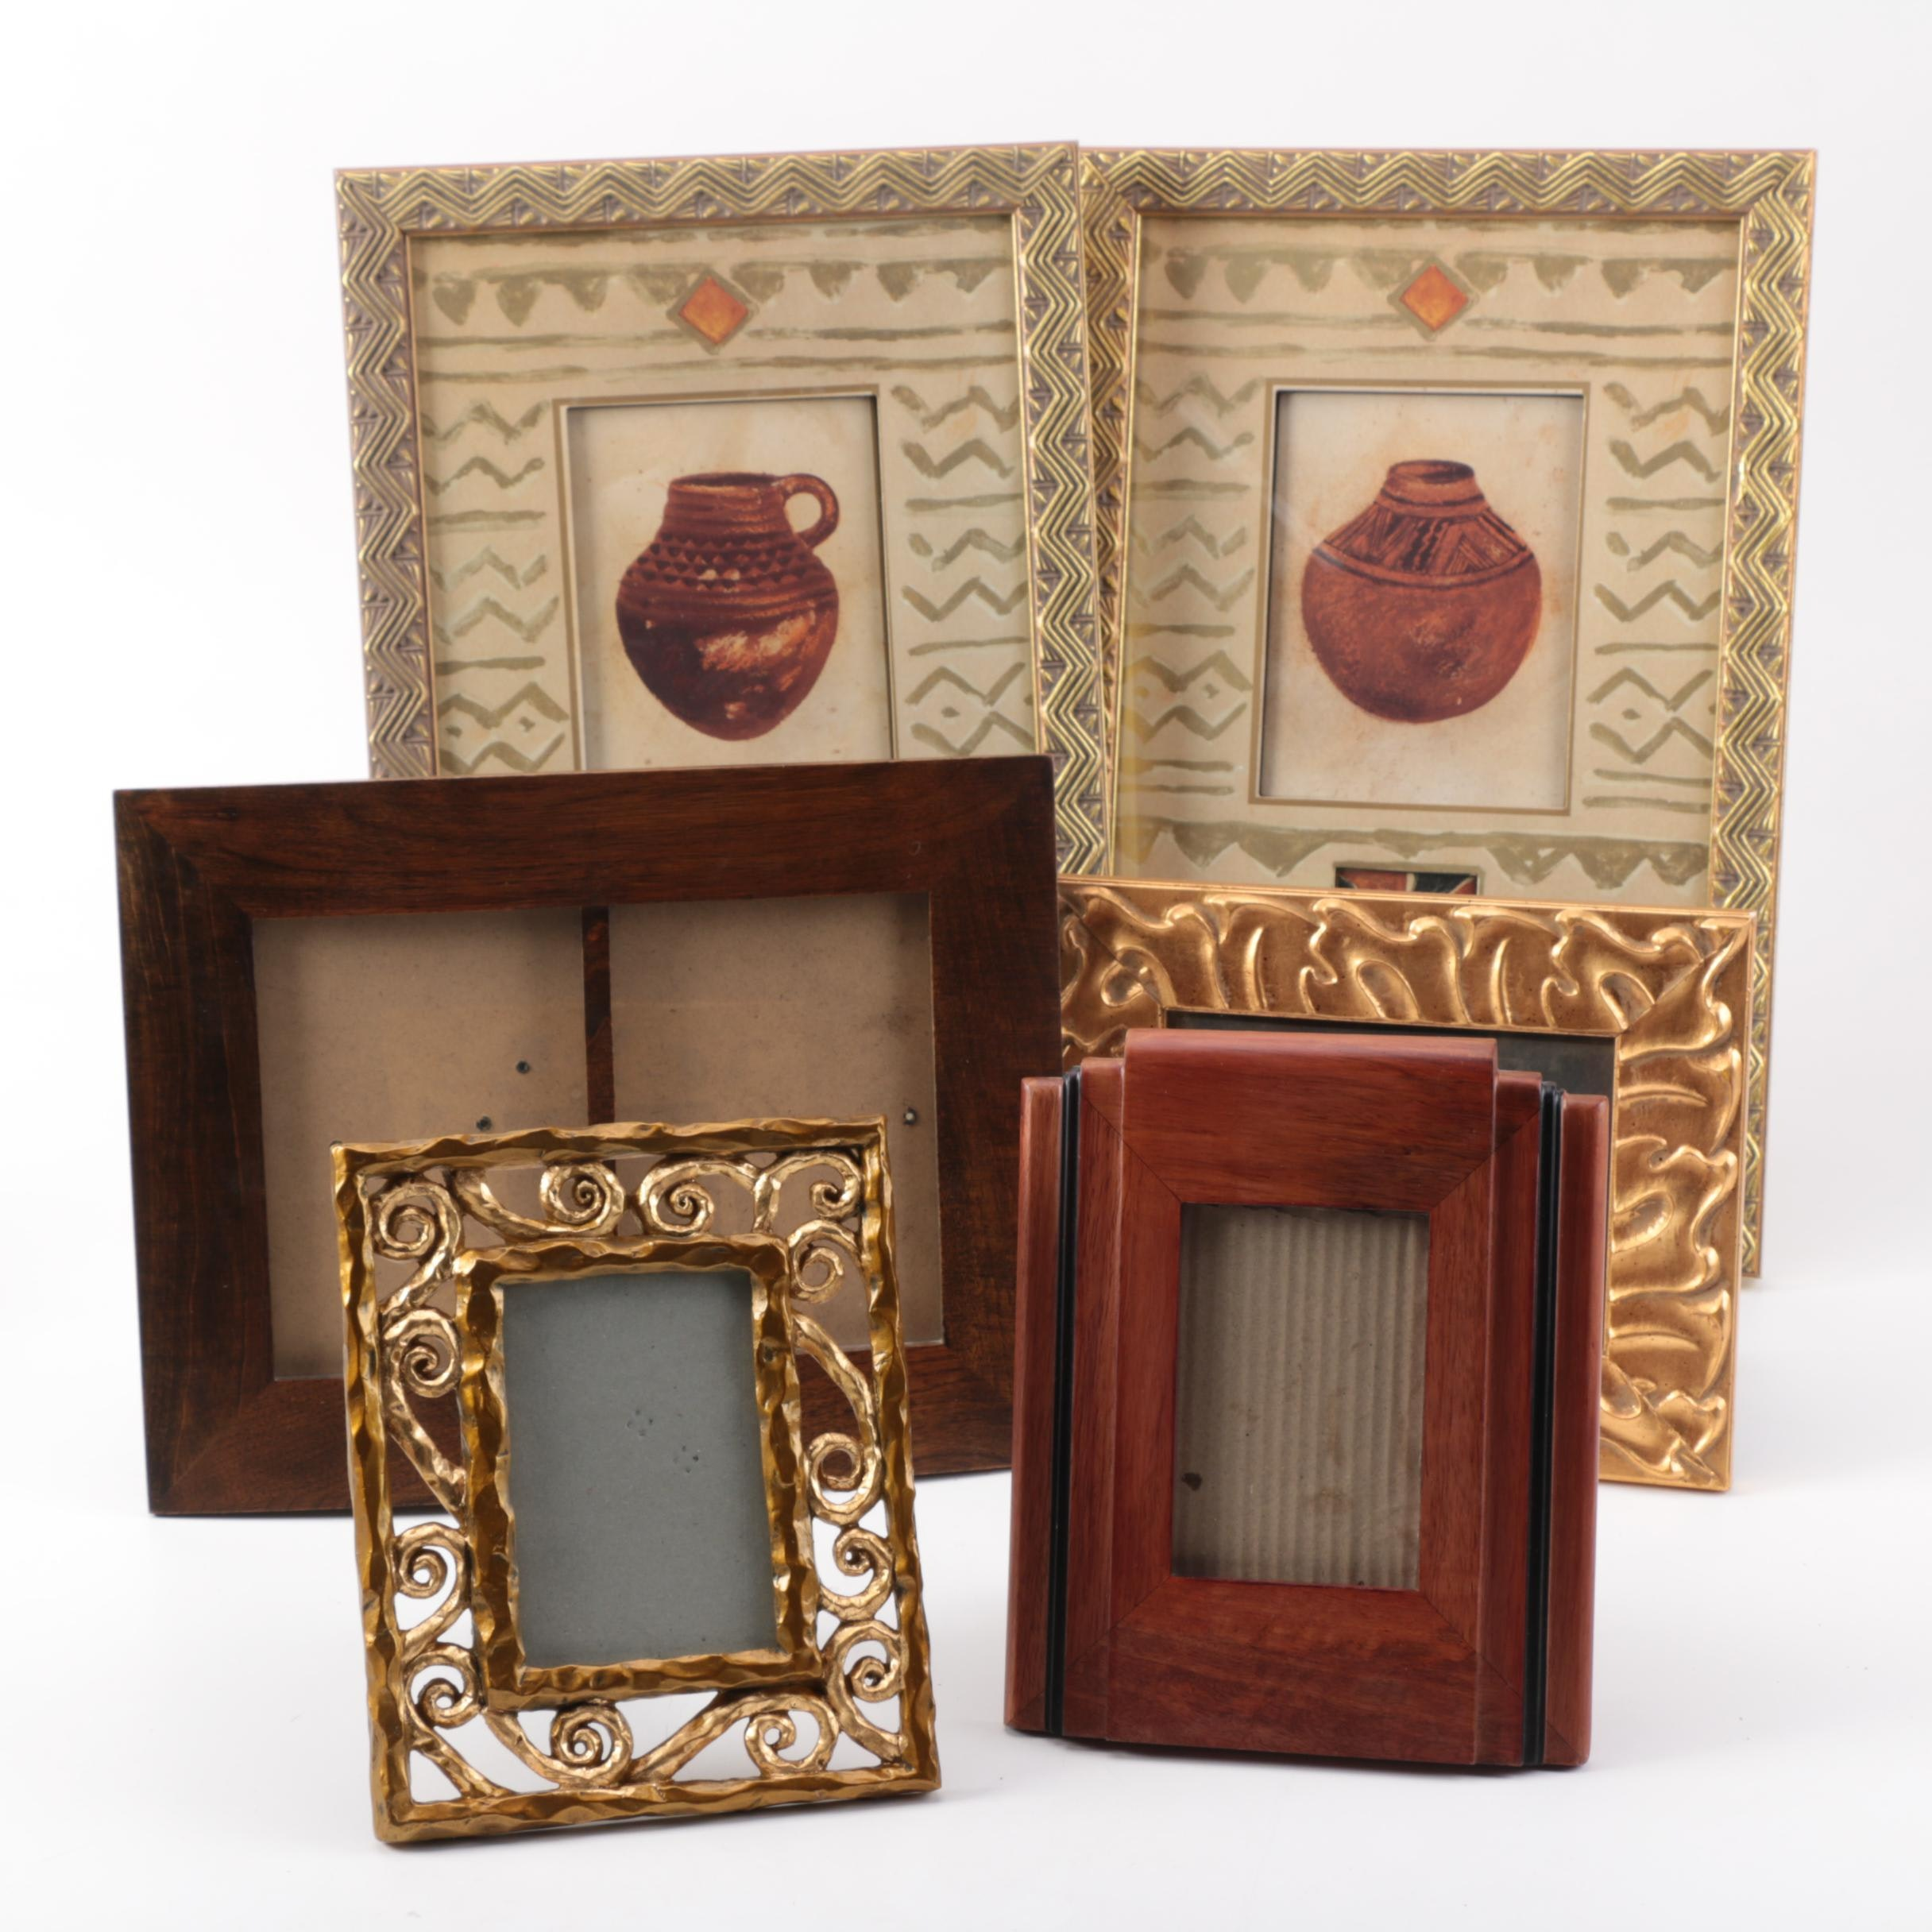 Four Picture Frames and Two Framed Prints Depicting Native American Style Vases